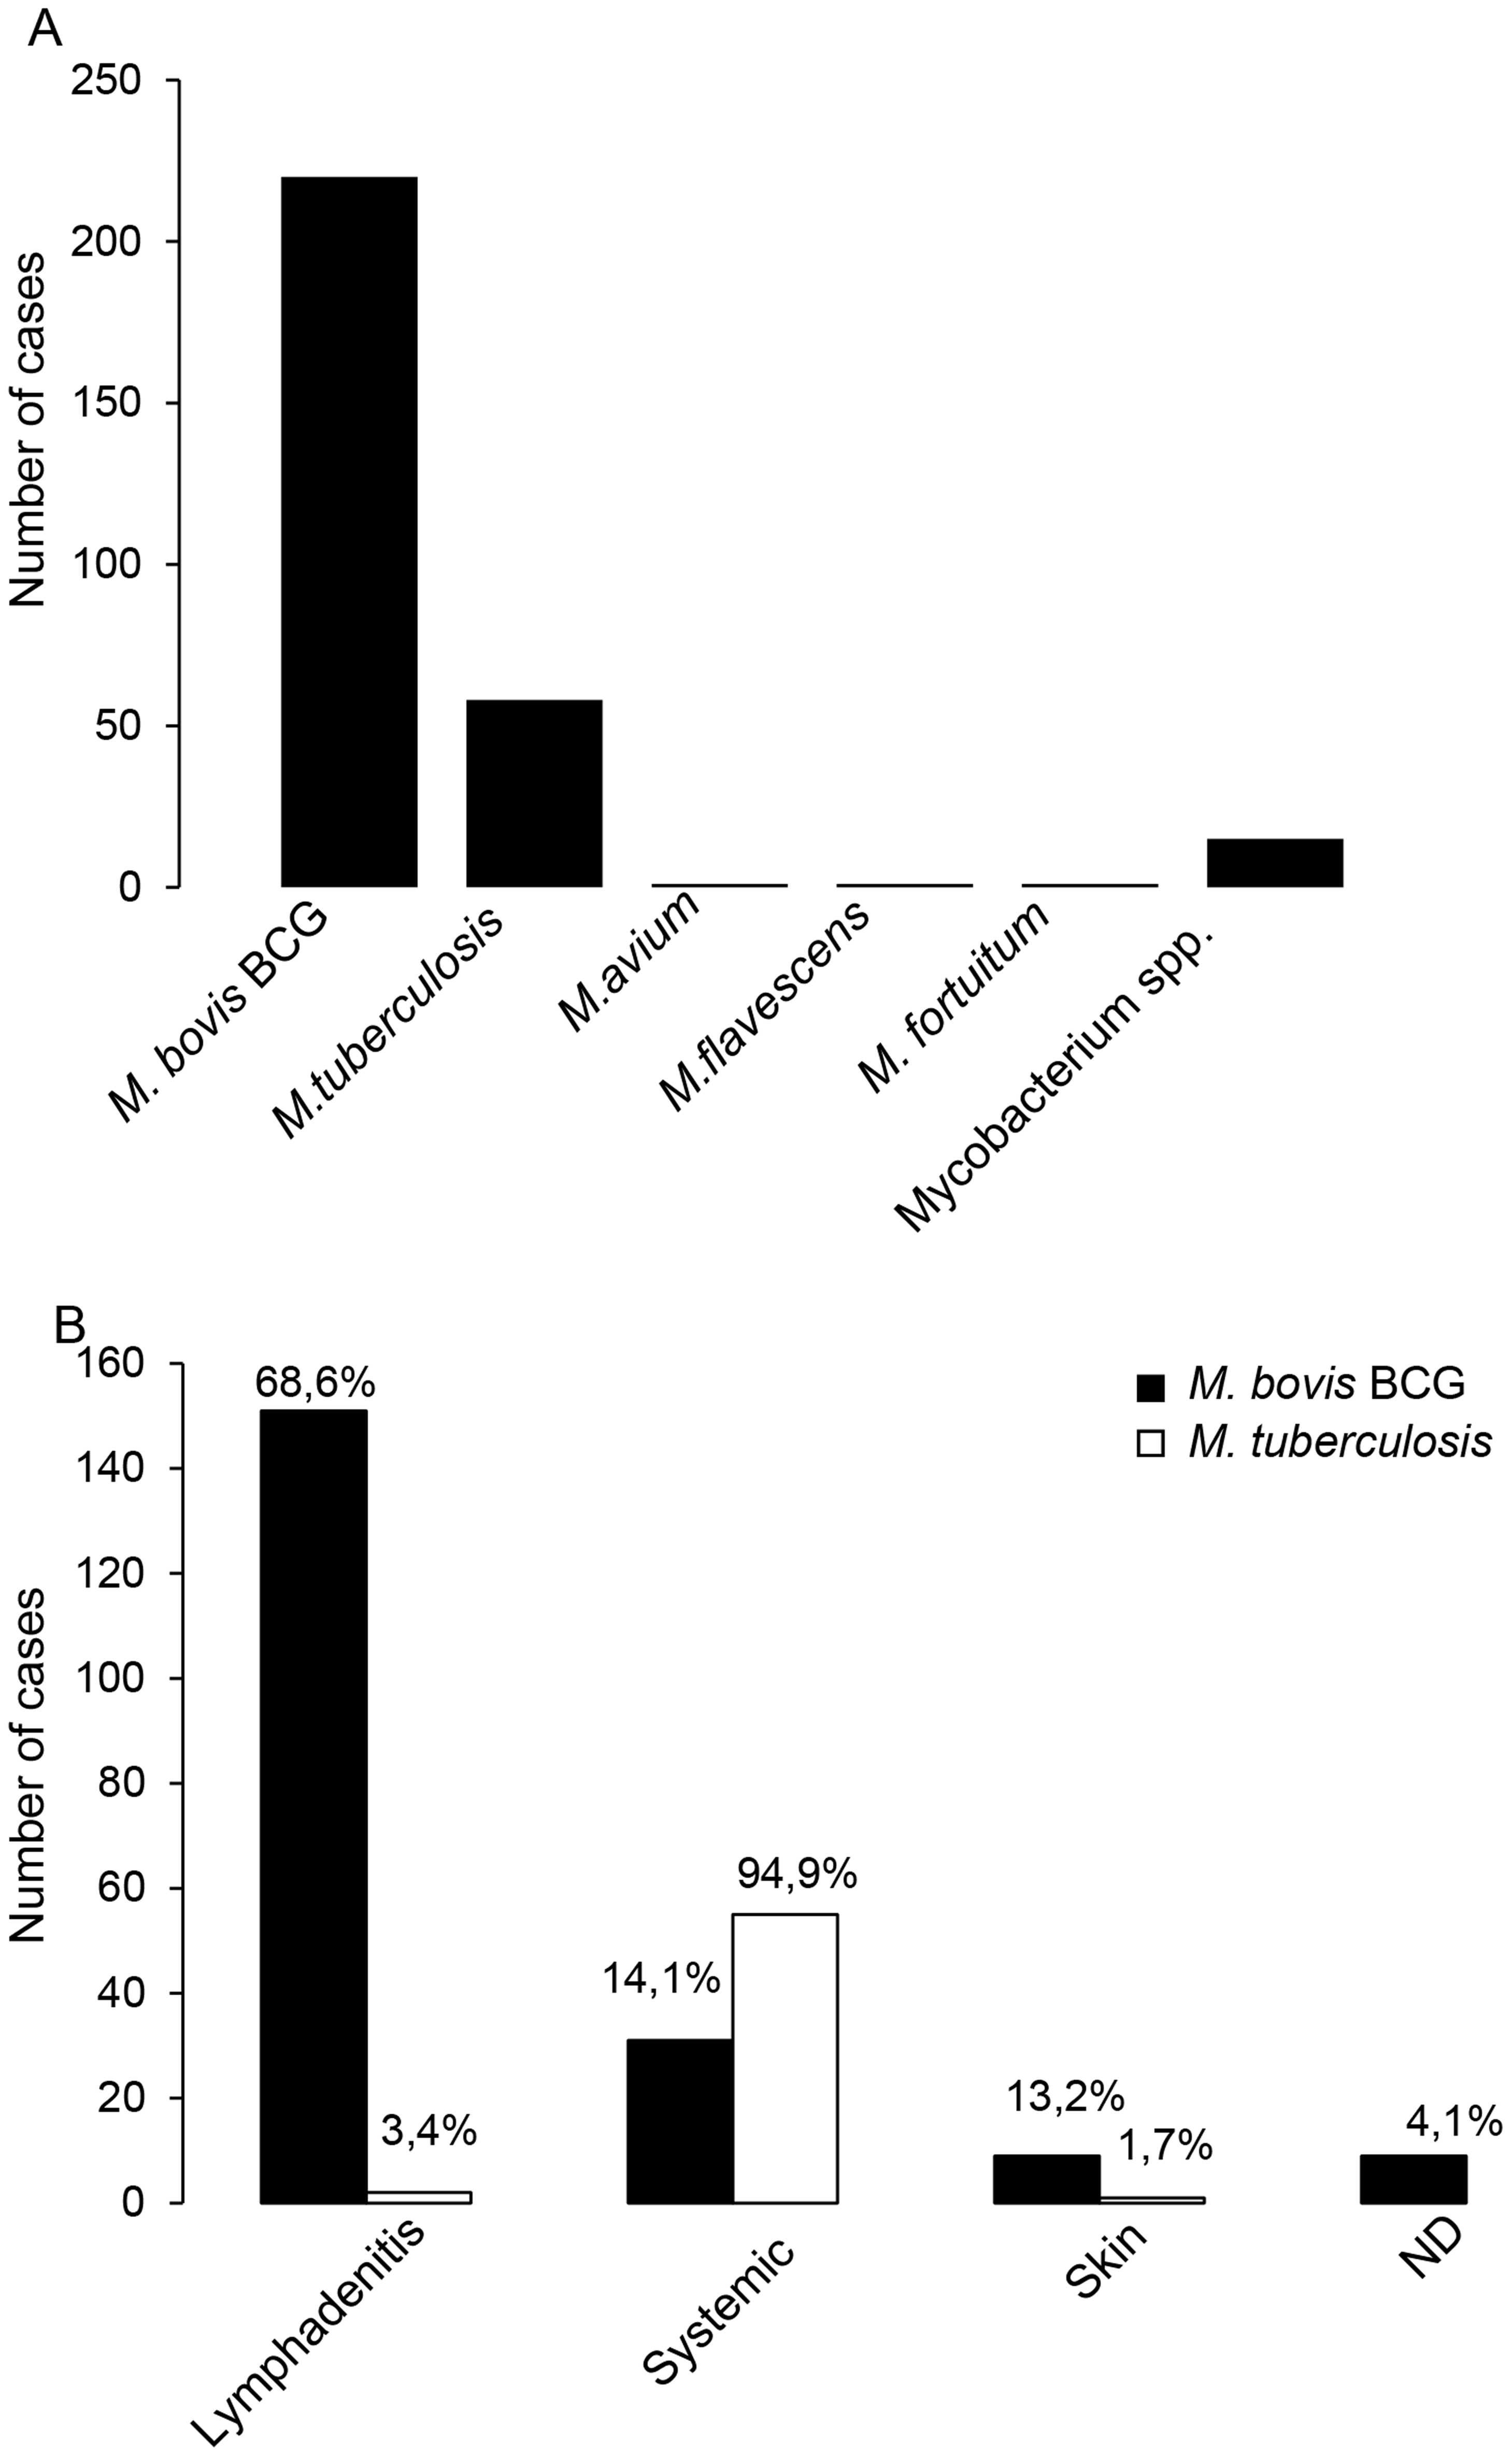 Analysis of published cases of mycobacterial infections in CGD patients.